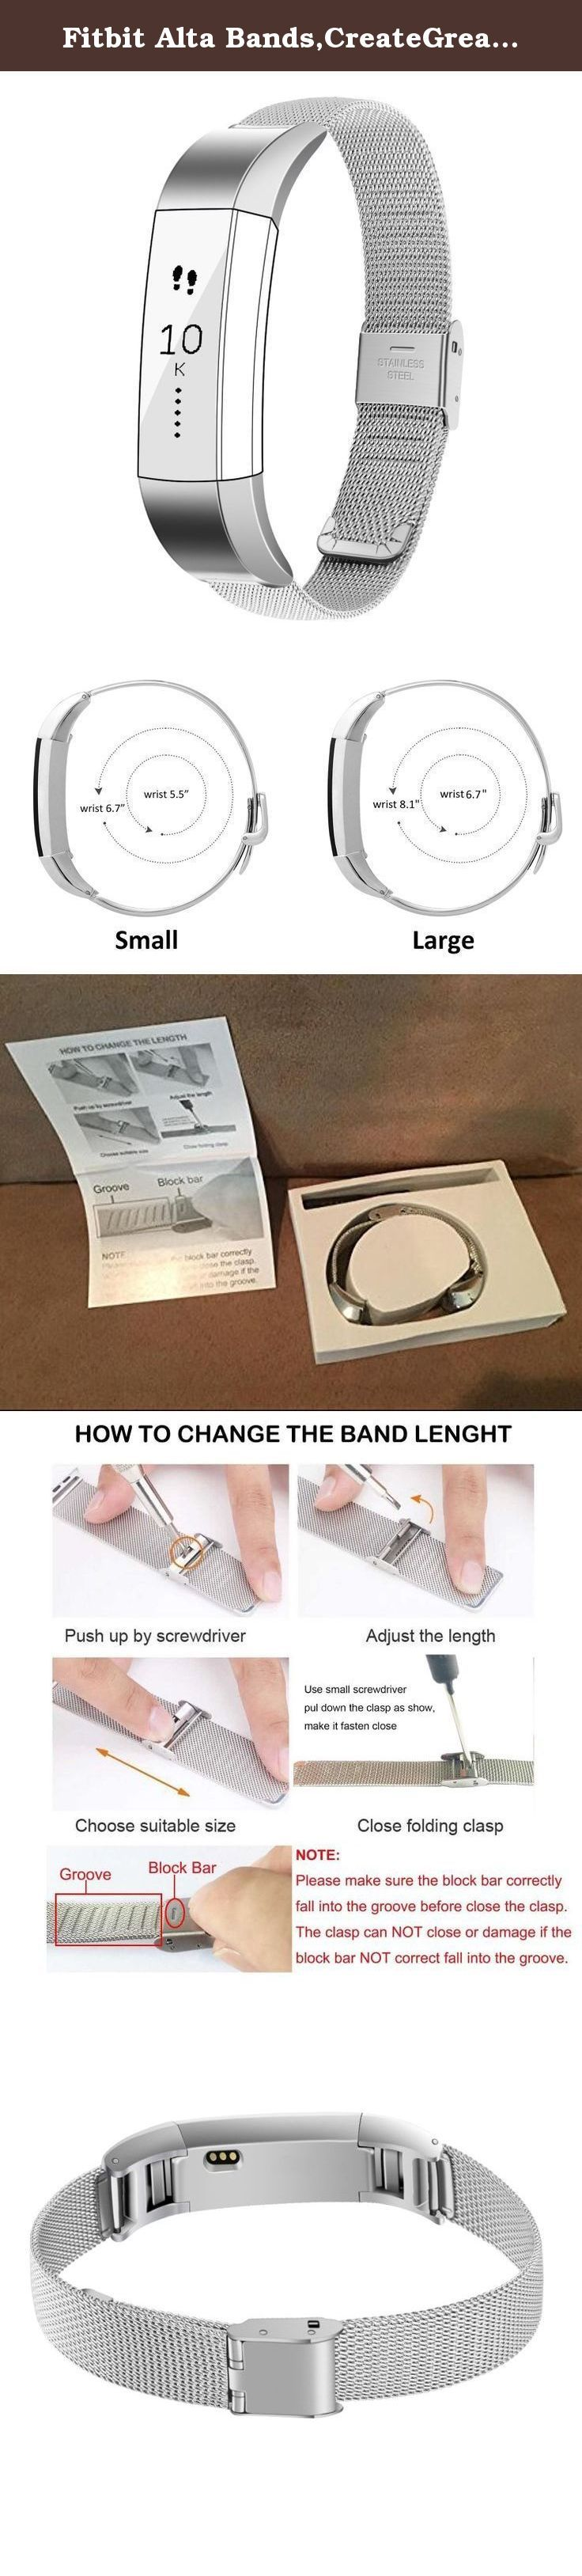 Fitbit Alta Bands,CreateGreat Replacement Accessory Bracelet Band For Fitbit Alta Wristbands/Fitbit Alta Bands/Fitbit Alta. for fitbit alta /fitbit alta bands /alta bands /fitbit bands /fit bit alta /fitbit alta replacement bands /fitbit alta wristbands /fitbit alta bracelet /fitbit accessories /fitbit watch /alta /fitbit alta small bands /fitbit alta gold /fitbit alta accessory bands /fitbit alta metal band /fitbit alta metal bracelet /fitbit wristband /fitbit replacement /fitbit rose…